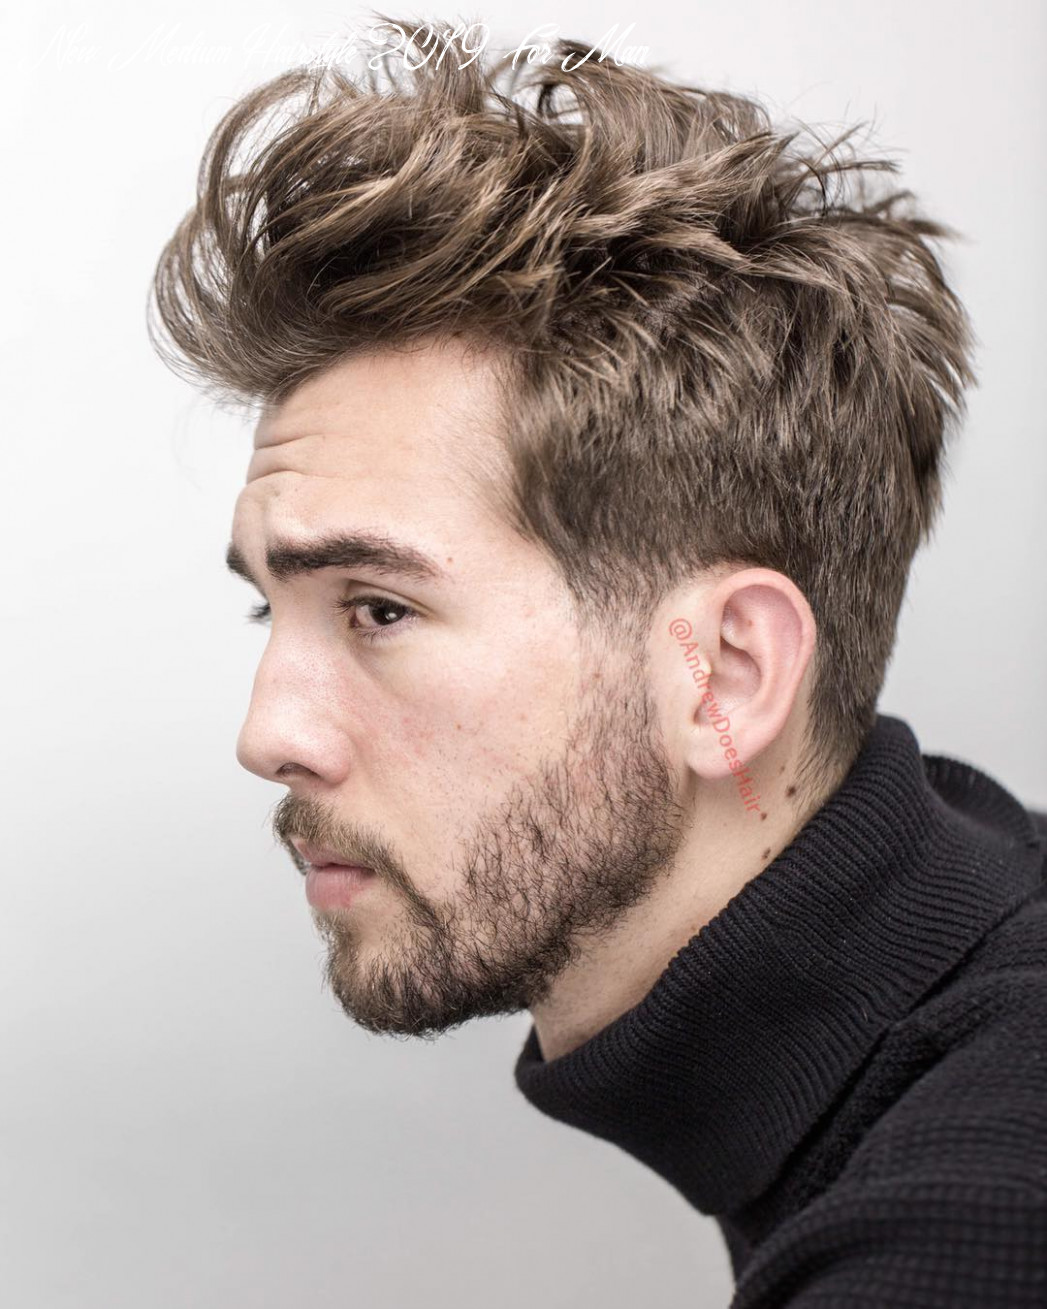 The 12 best medium length hairstyles for men   improb new medium hairstyle 2019 for man